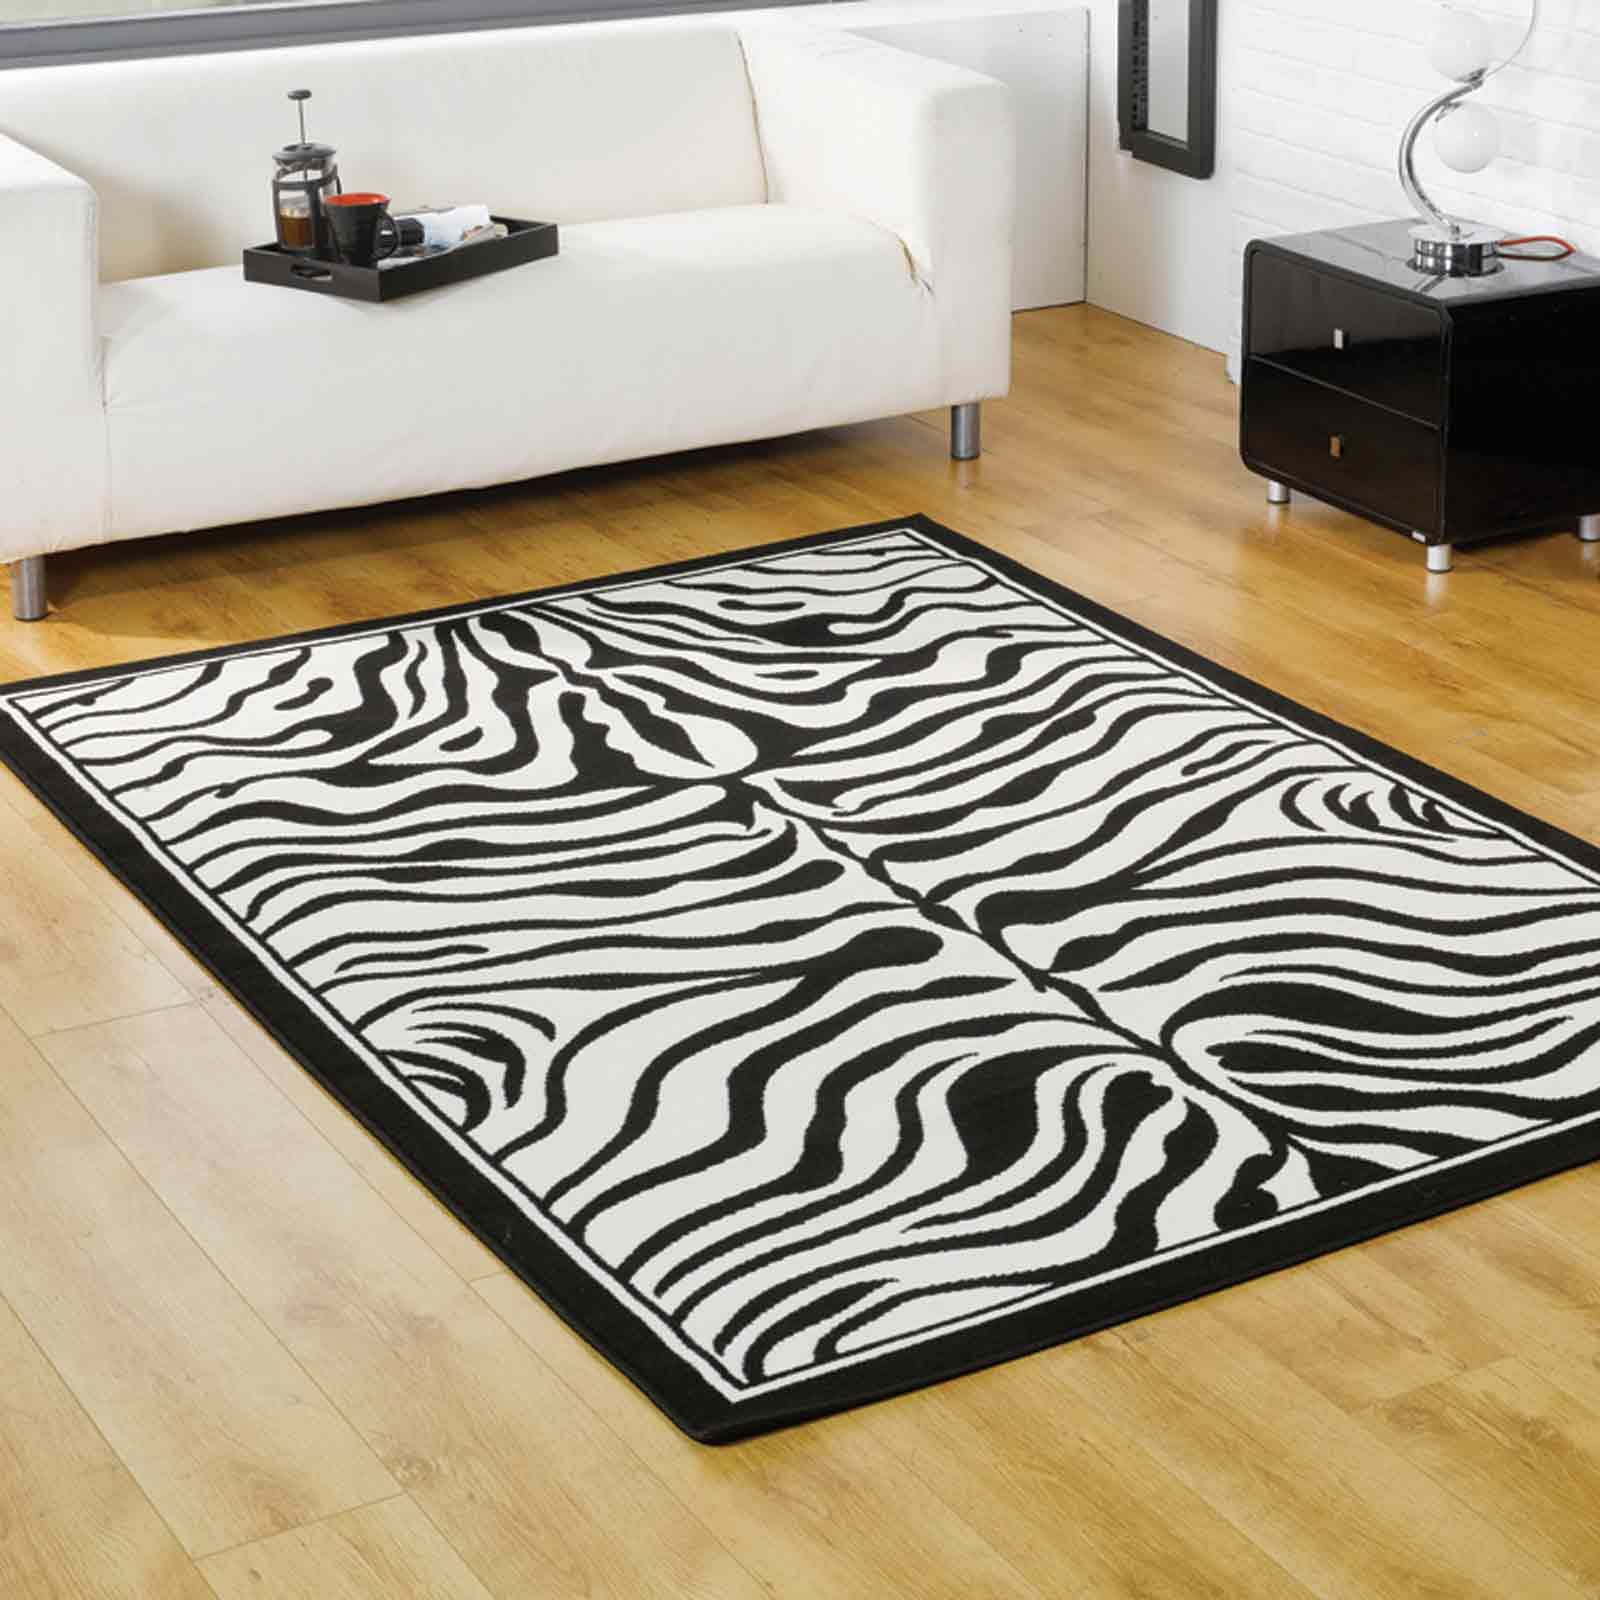 Zebra Rug Collection Is Machine Made